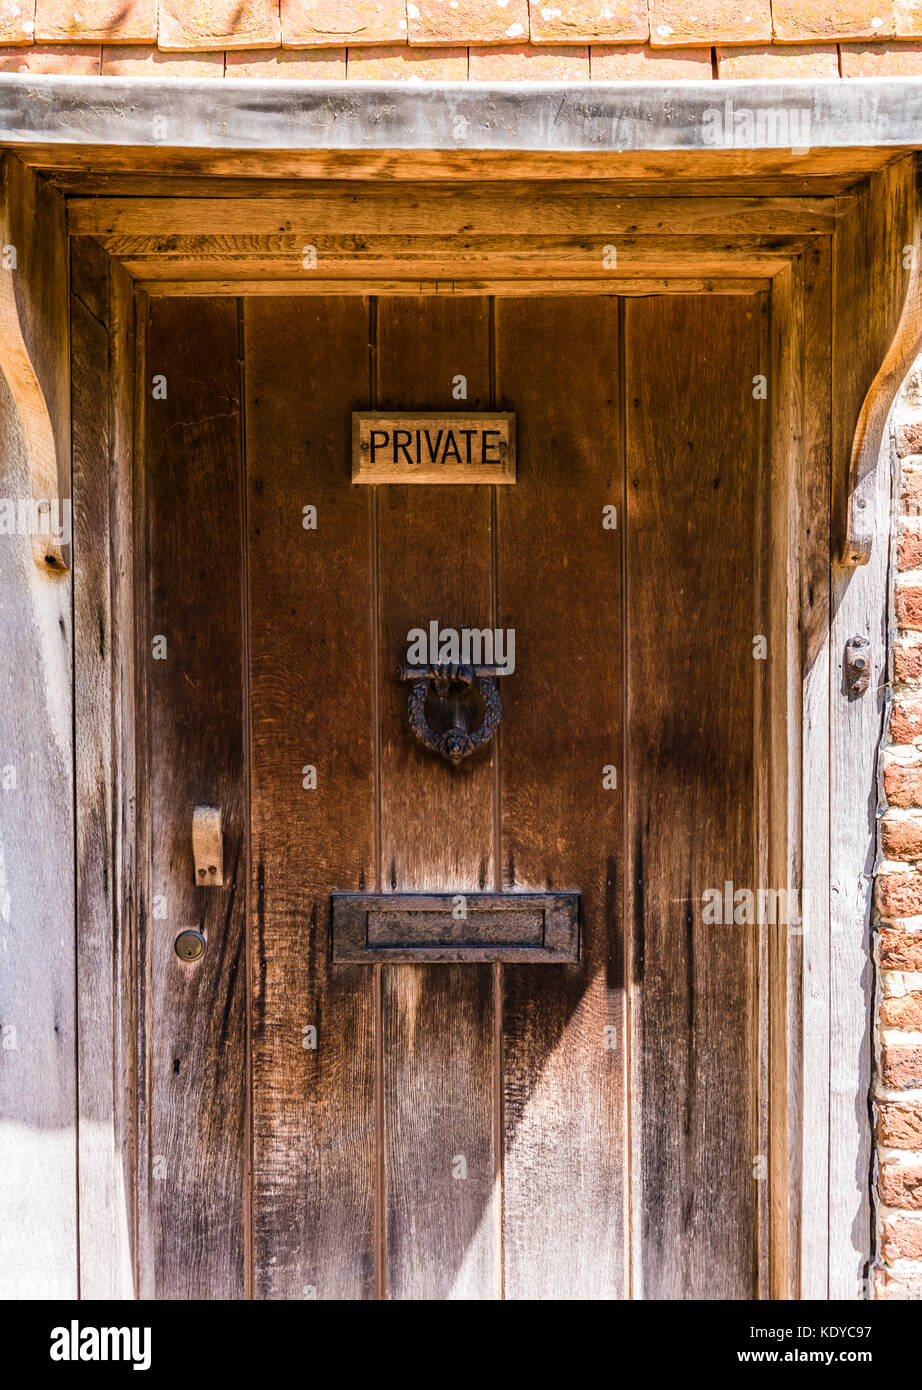 Private wooden door at Sissinghurst Gardens, Kent, UK - Stock Image